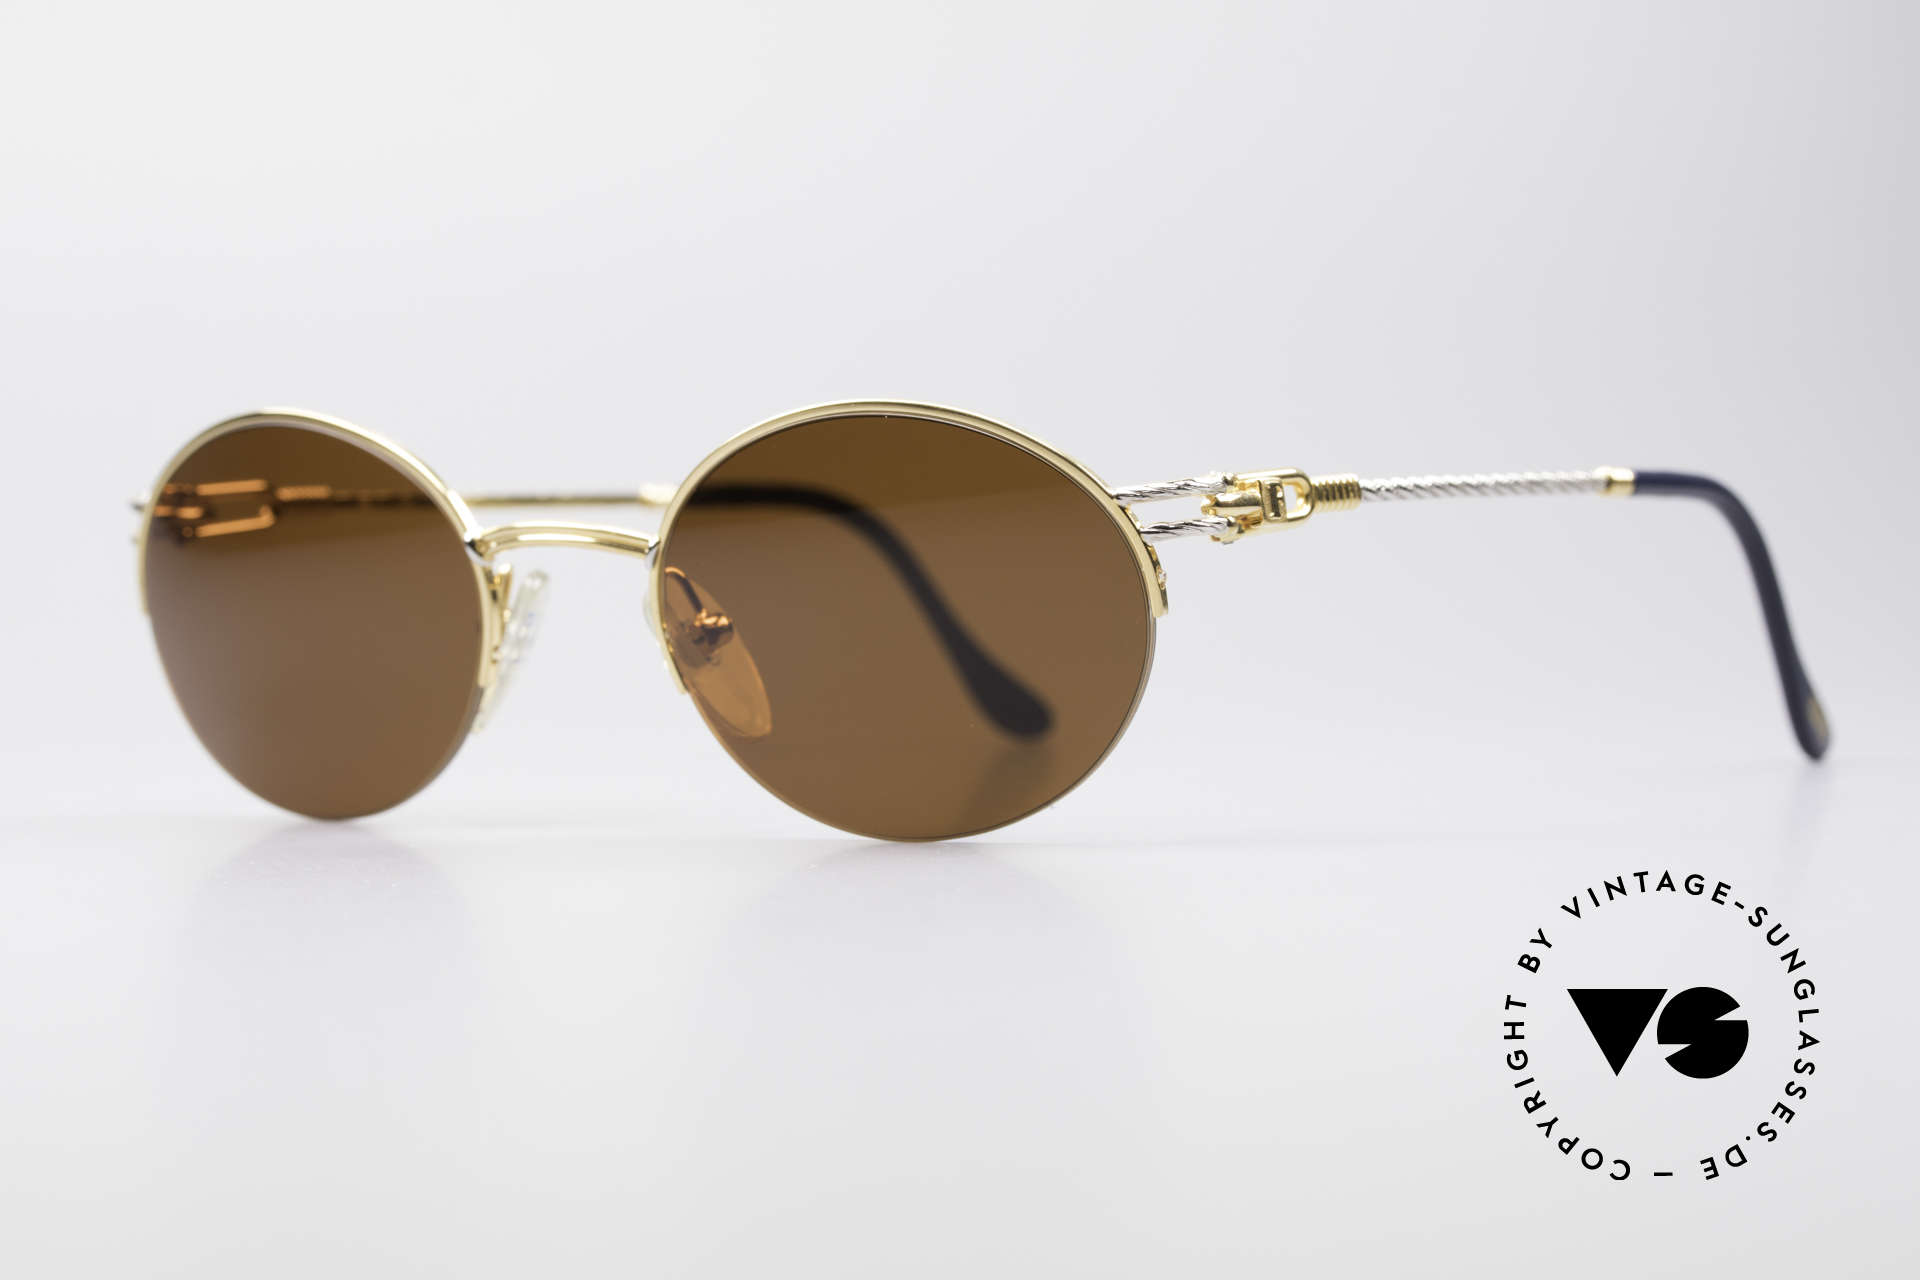 Fred Feroe Oval Luxury Sunglasses, the model name FEROE = French for the Faroe Islands, Made for Men and Women